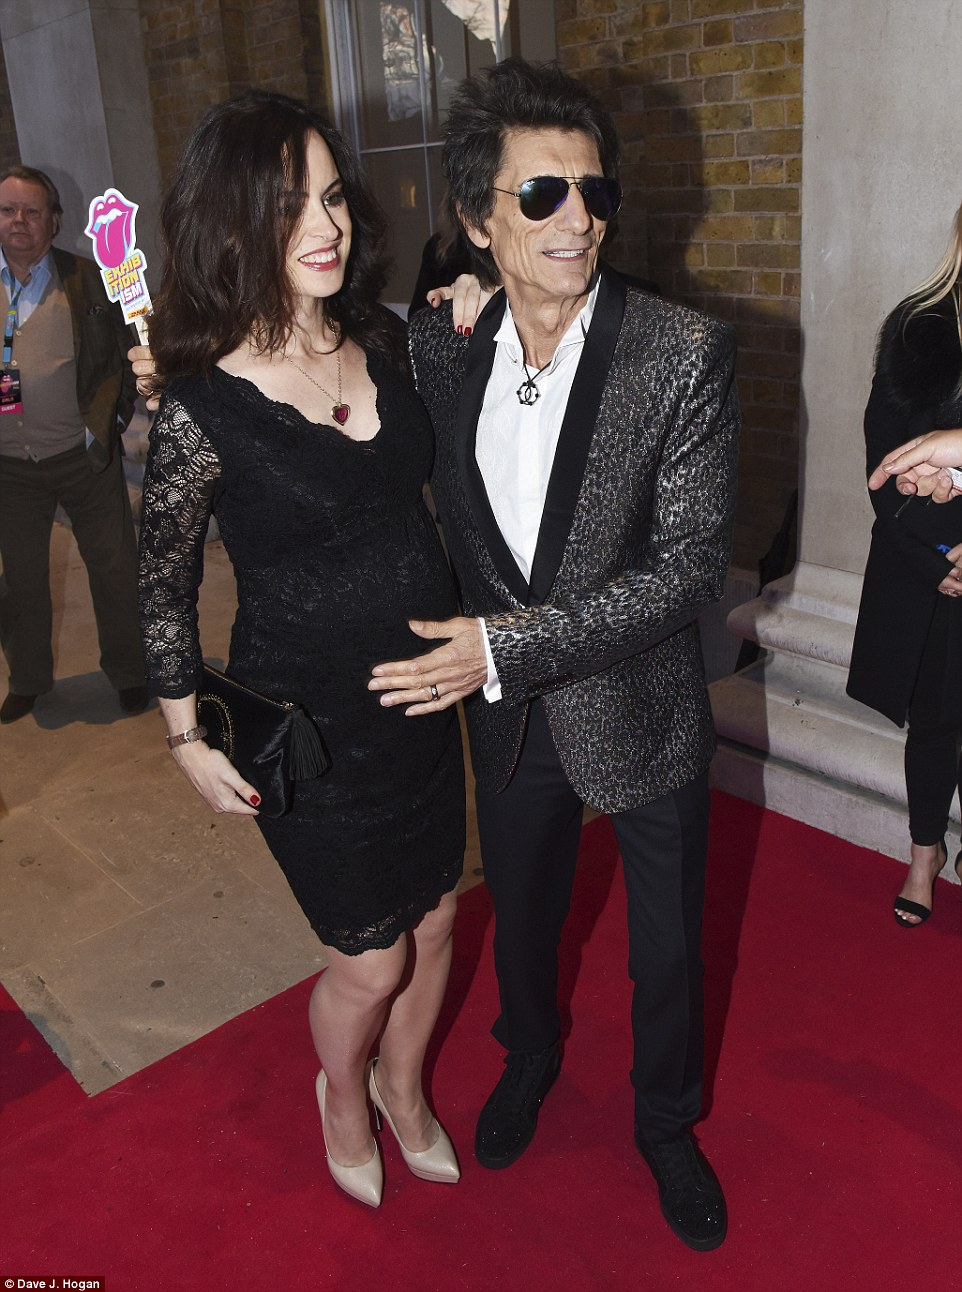 Ronnie Wood and wife